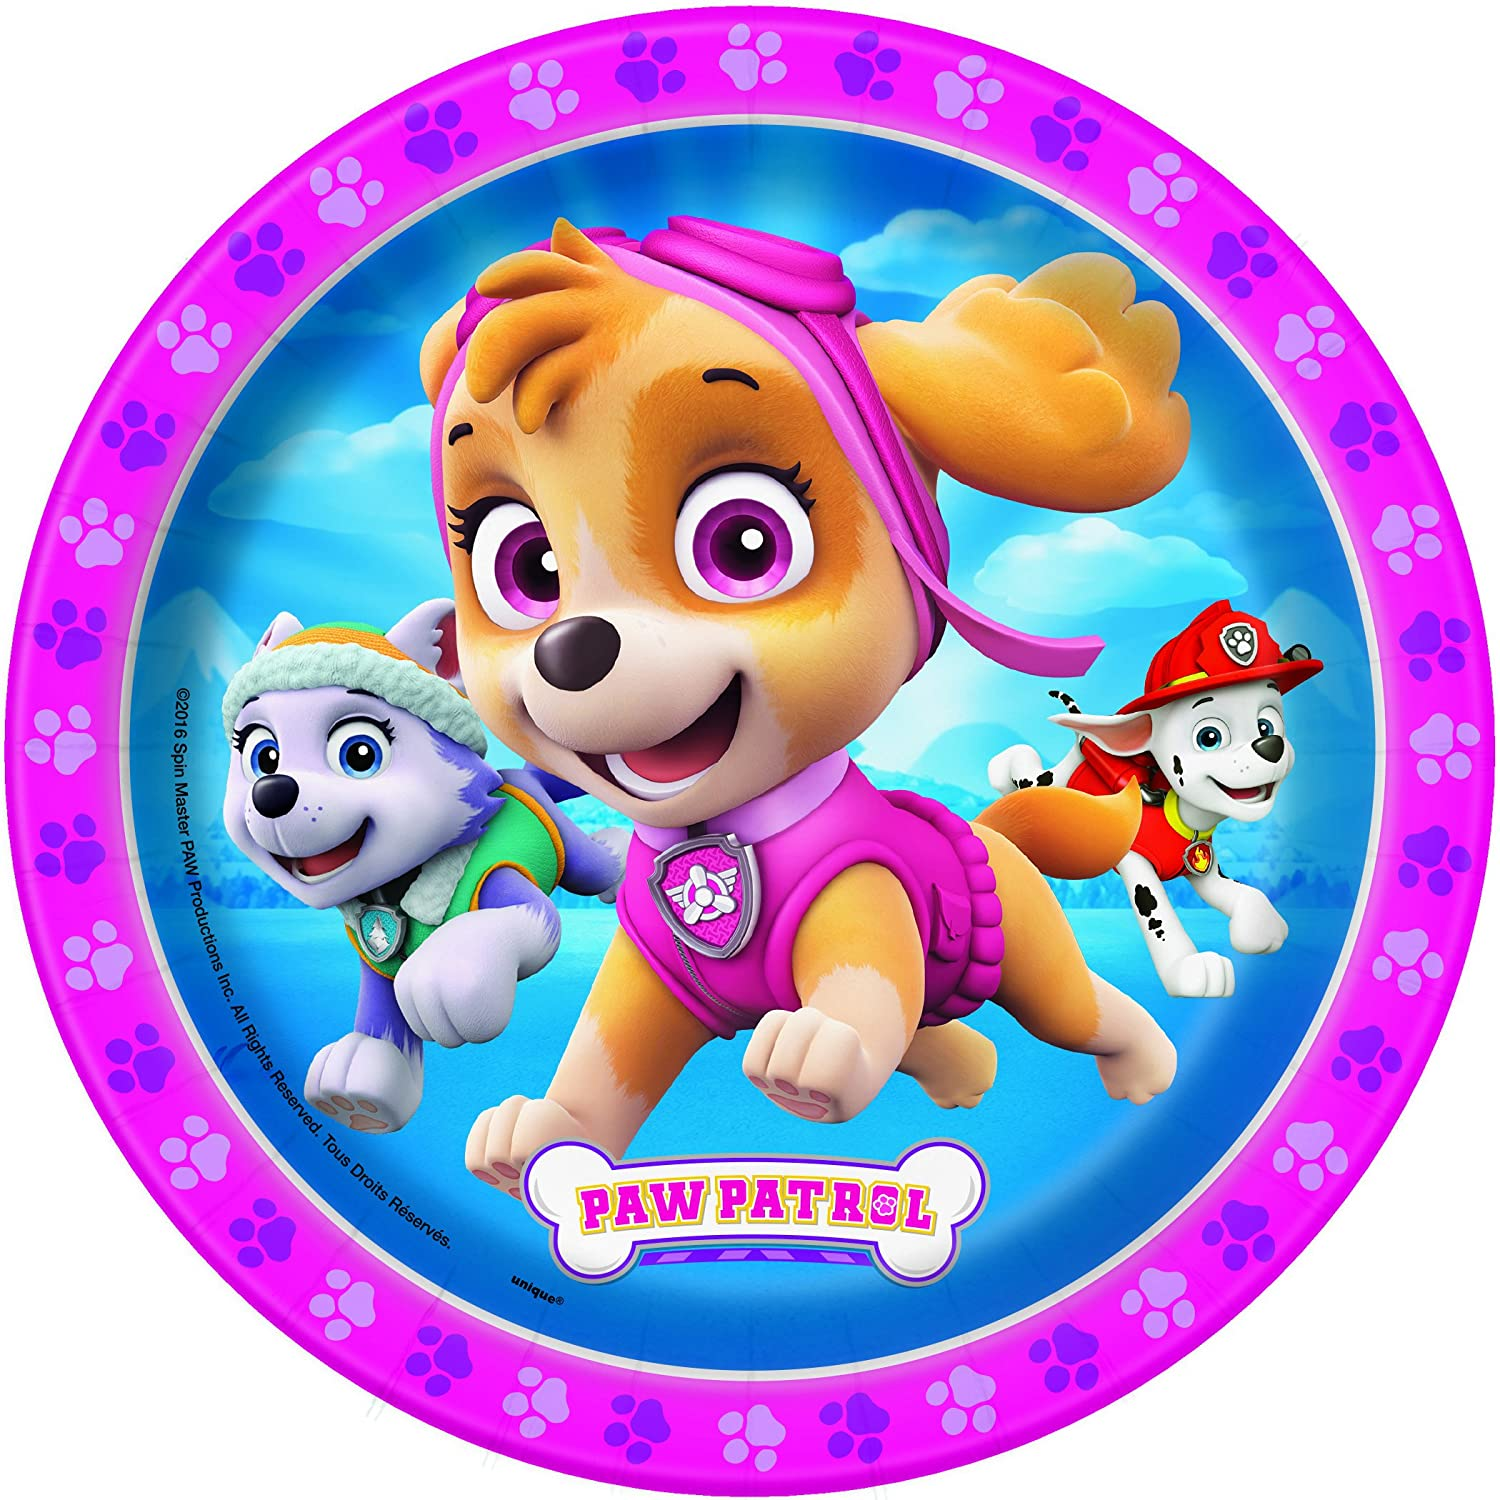 Best Value Dessert Cake Plates and Cups Paper Dinner Plates TABLEWARE Girl Paw Patrol Skye Party Supplies Tableware Pack Serves 16 Guests Girl Paw Patrol Napkins Licensed Girl Paw Patrol Pink Birthday Theme Kit